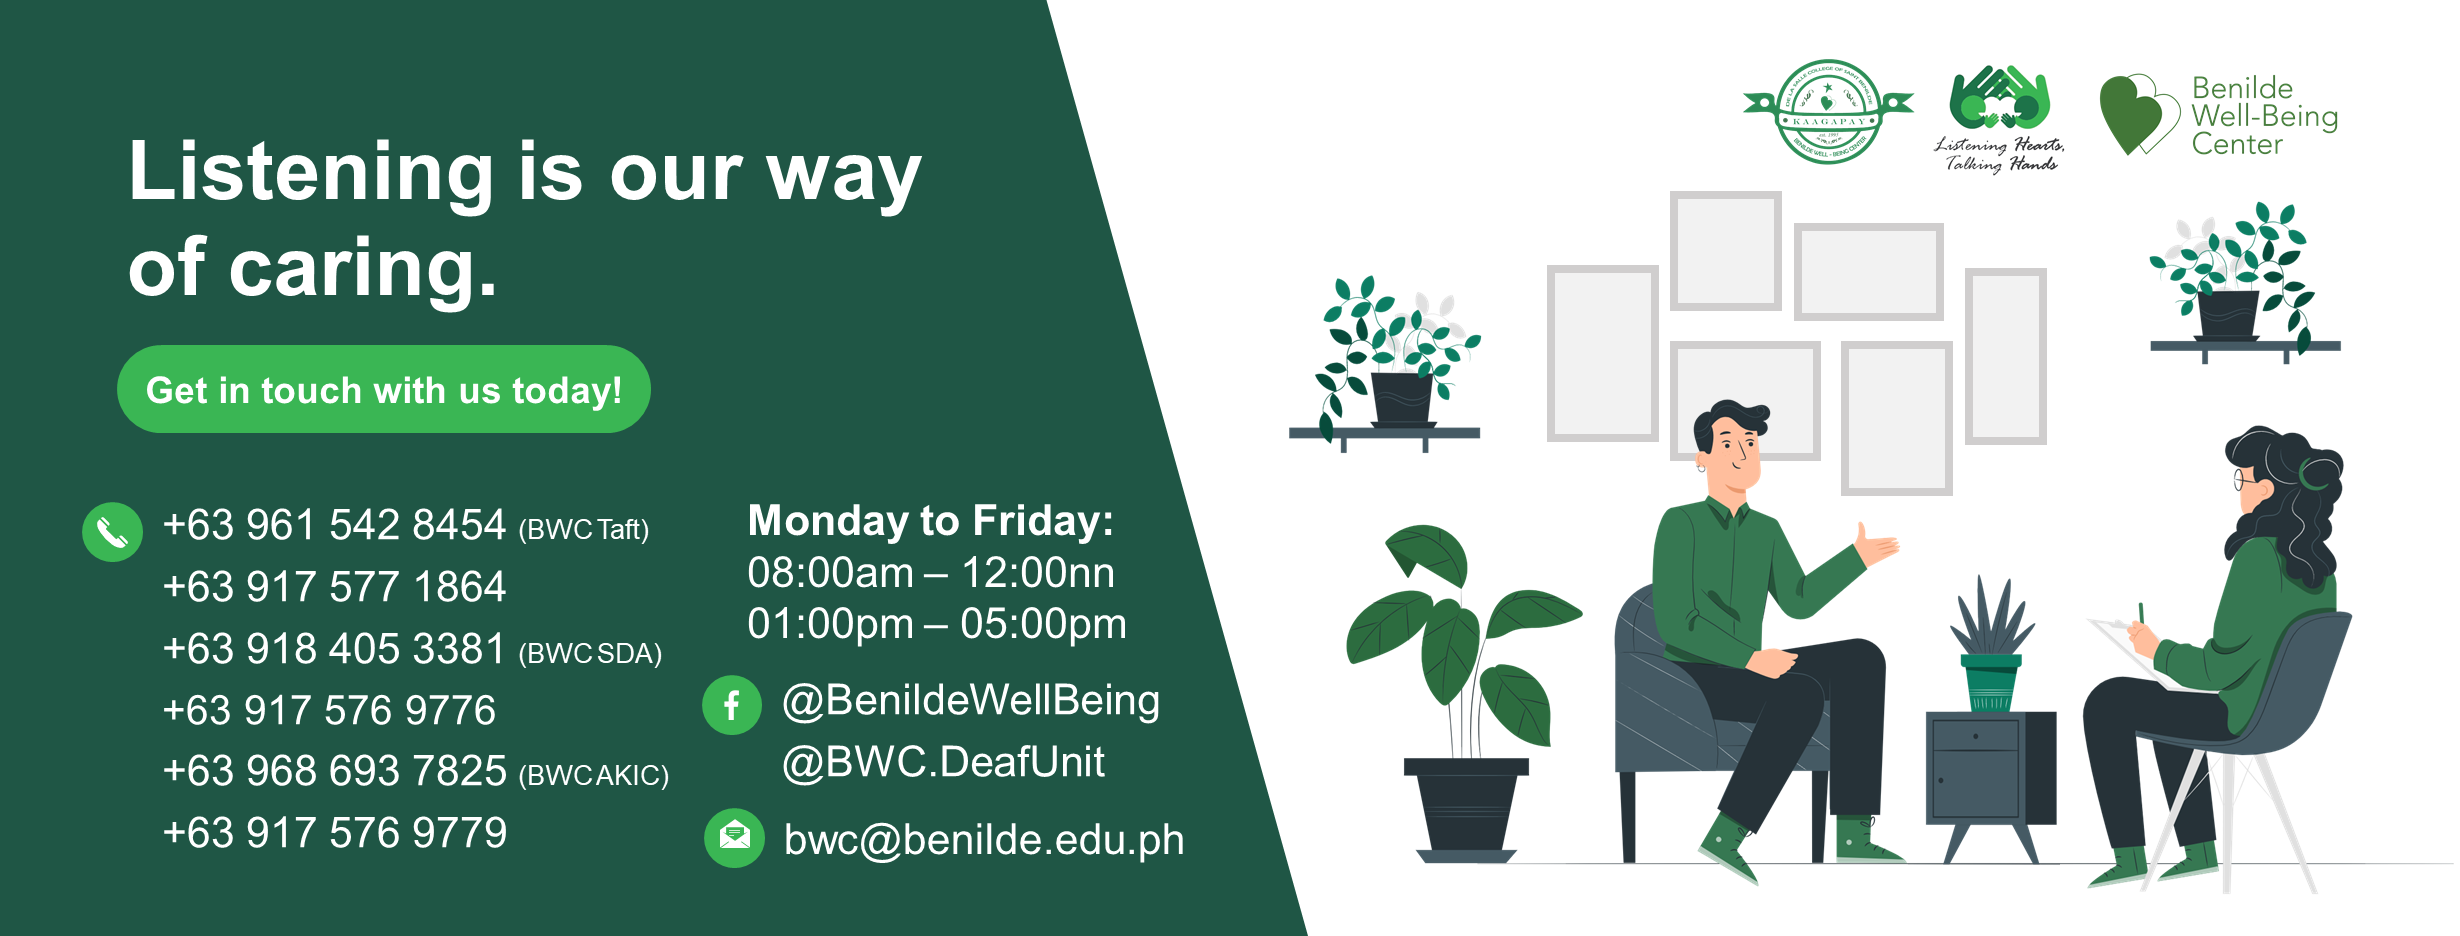 Cover Photo Courtesy Of Benilde Well Being Center